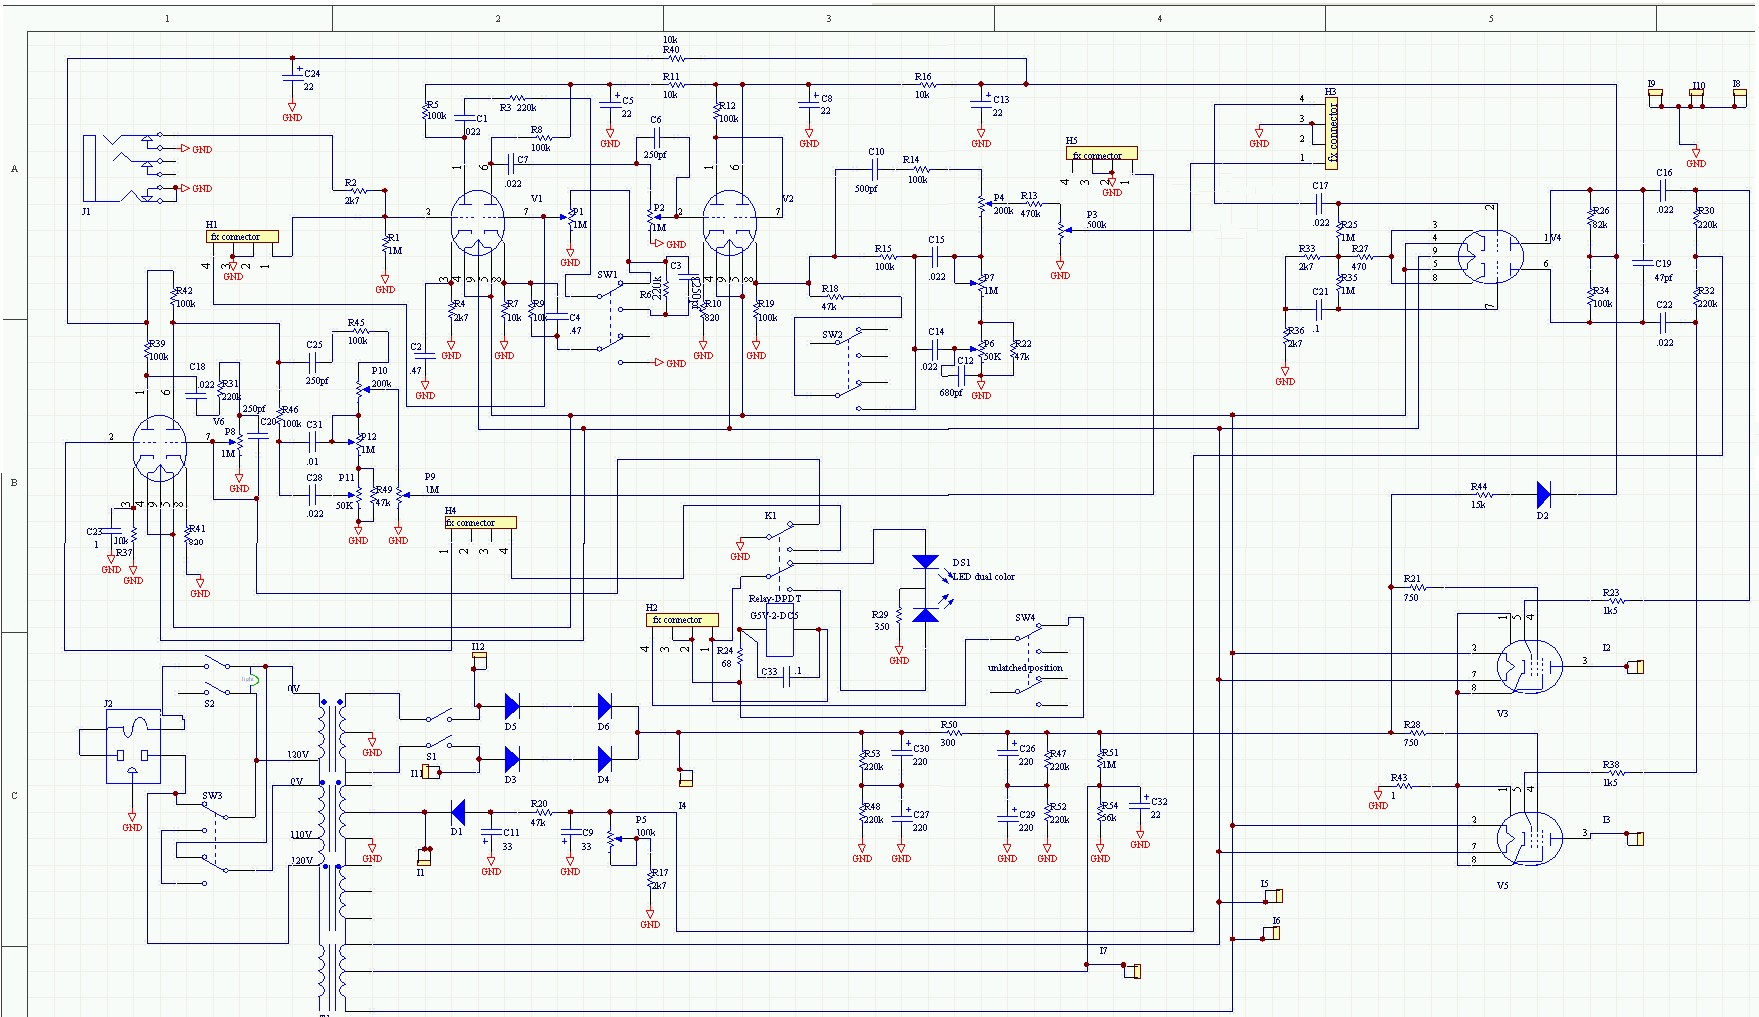 Krank Chadwick Series Schematic on circuit diagram, fender schematic, tube map, zvex sho schematic, irig schematic, peavey schematic, jtm45 schematic, overdrive schematic, dsl schematic, 3pdt schematic, ac30 schematic, 1987x schematic, jcm 900 schematic, transformer schematic, marshall schematic, amp schematic, bassman schematic, guitar schematic, functional flow block diagram, 5e3 schematic, bass tube preamp schematic, one-line diagram, slo-100 schematic, piping and instrumentation diagram, soldano schematic, technical drawing, block diagram,